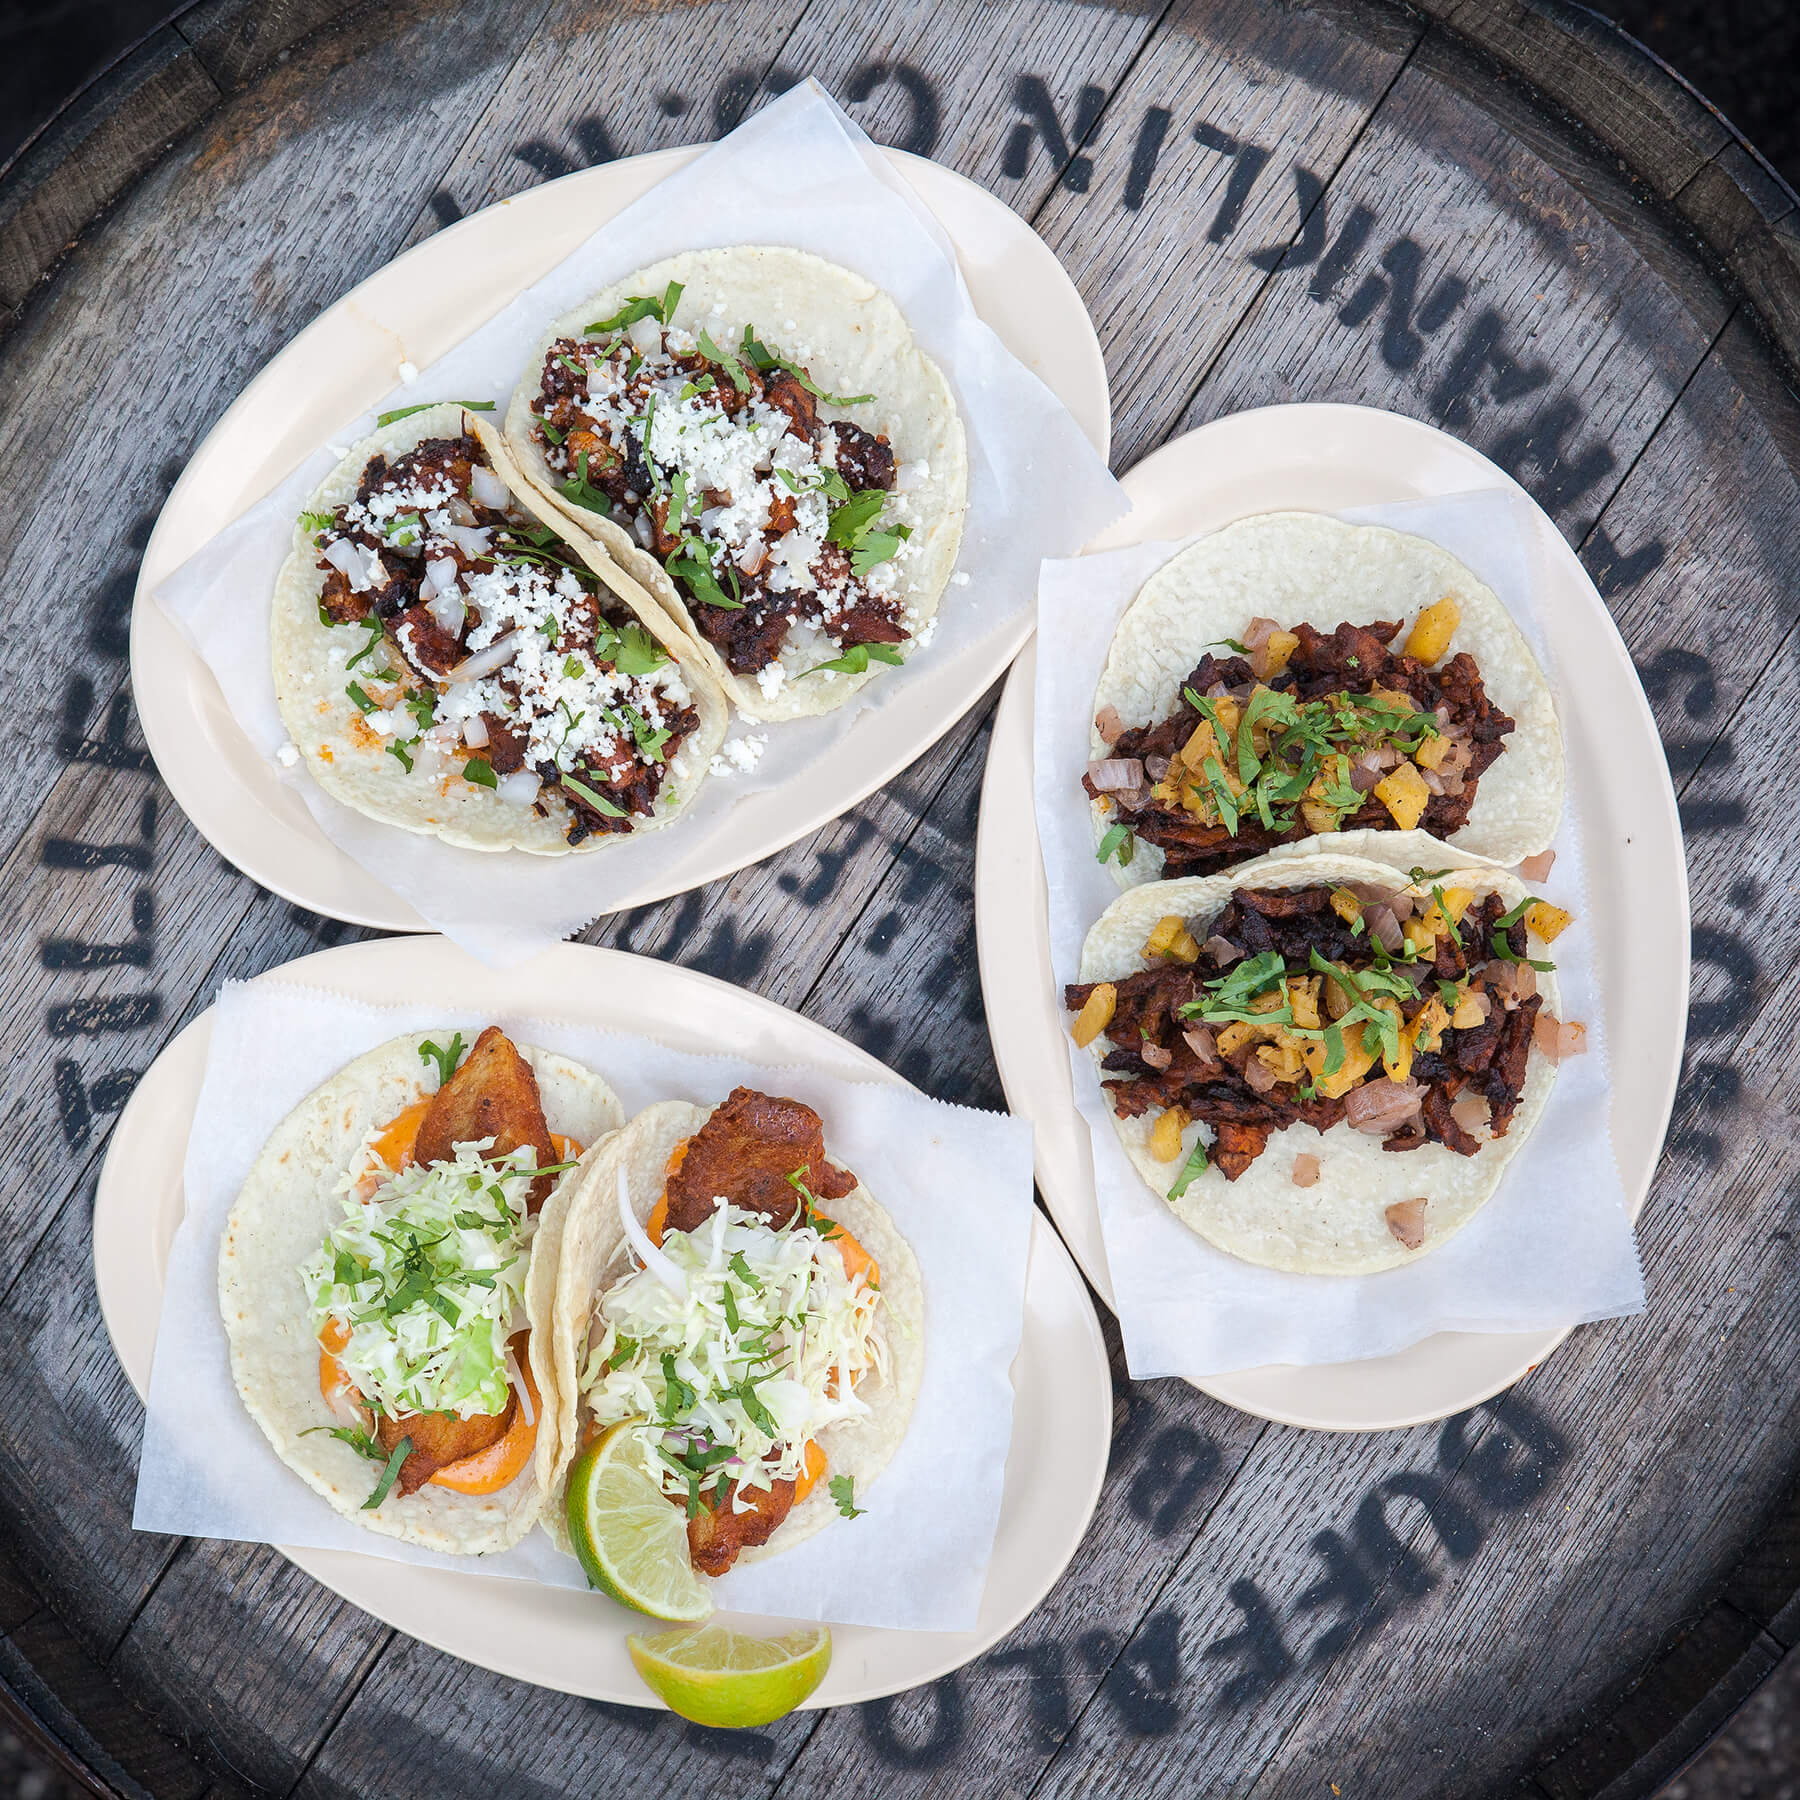 Here Are 6 Restaurants To Eat Mouthwatering Tacos That Are Insanely Good In Illinois